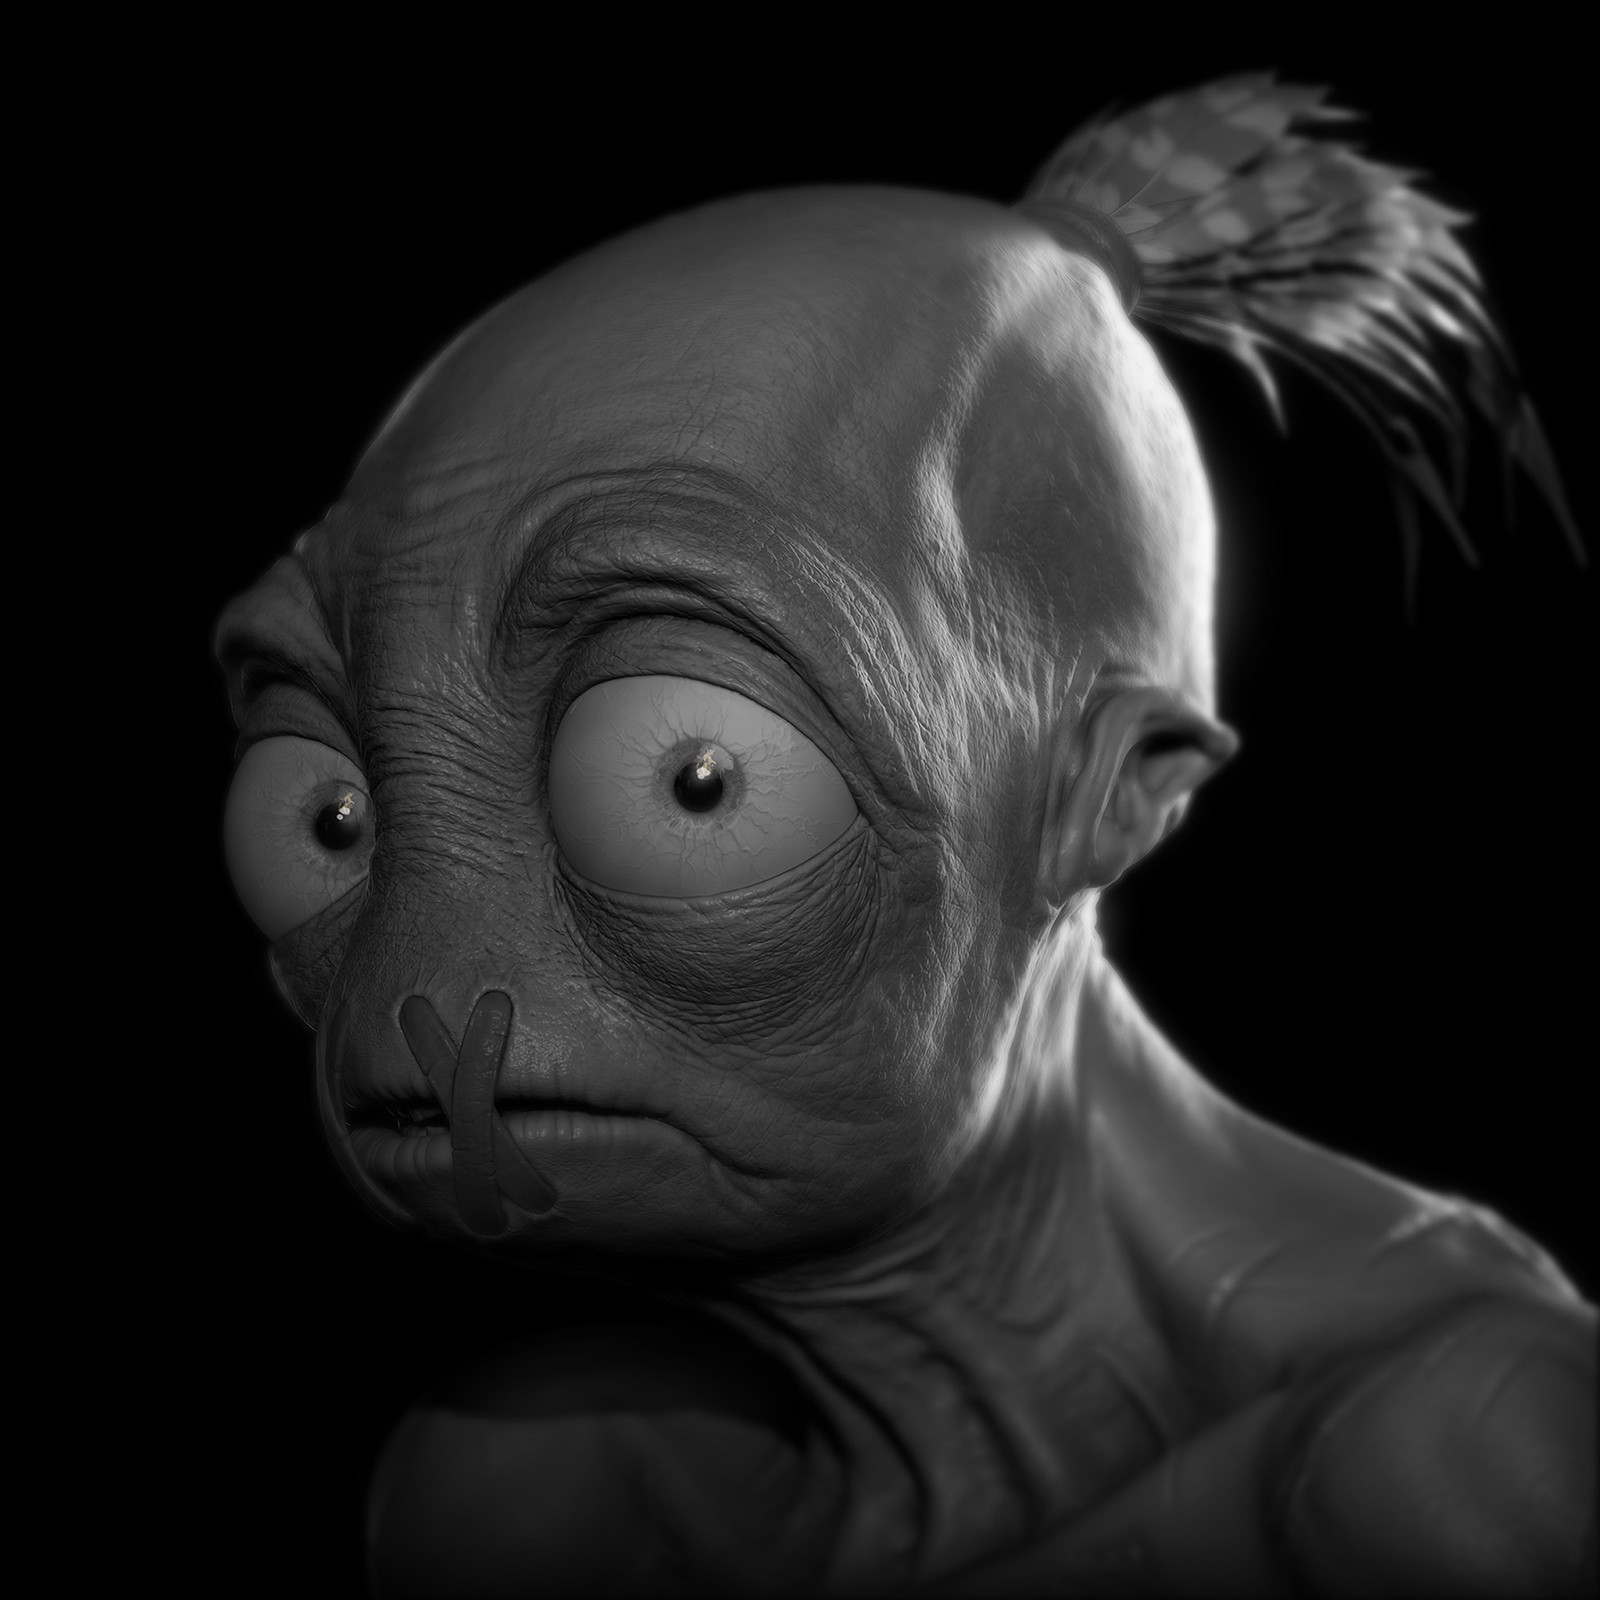 Guillaume lachance oddworld ss face